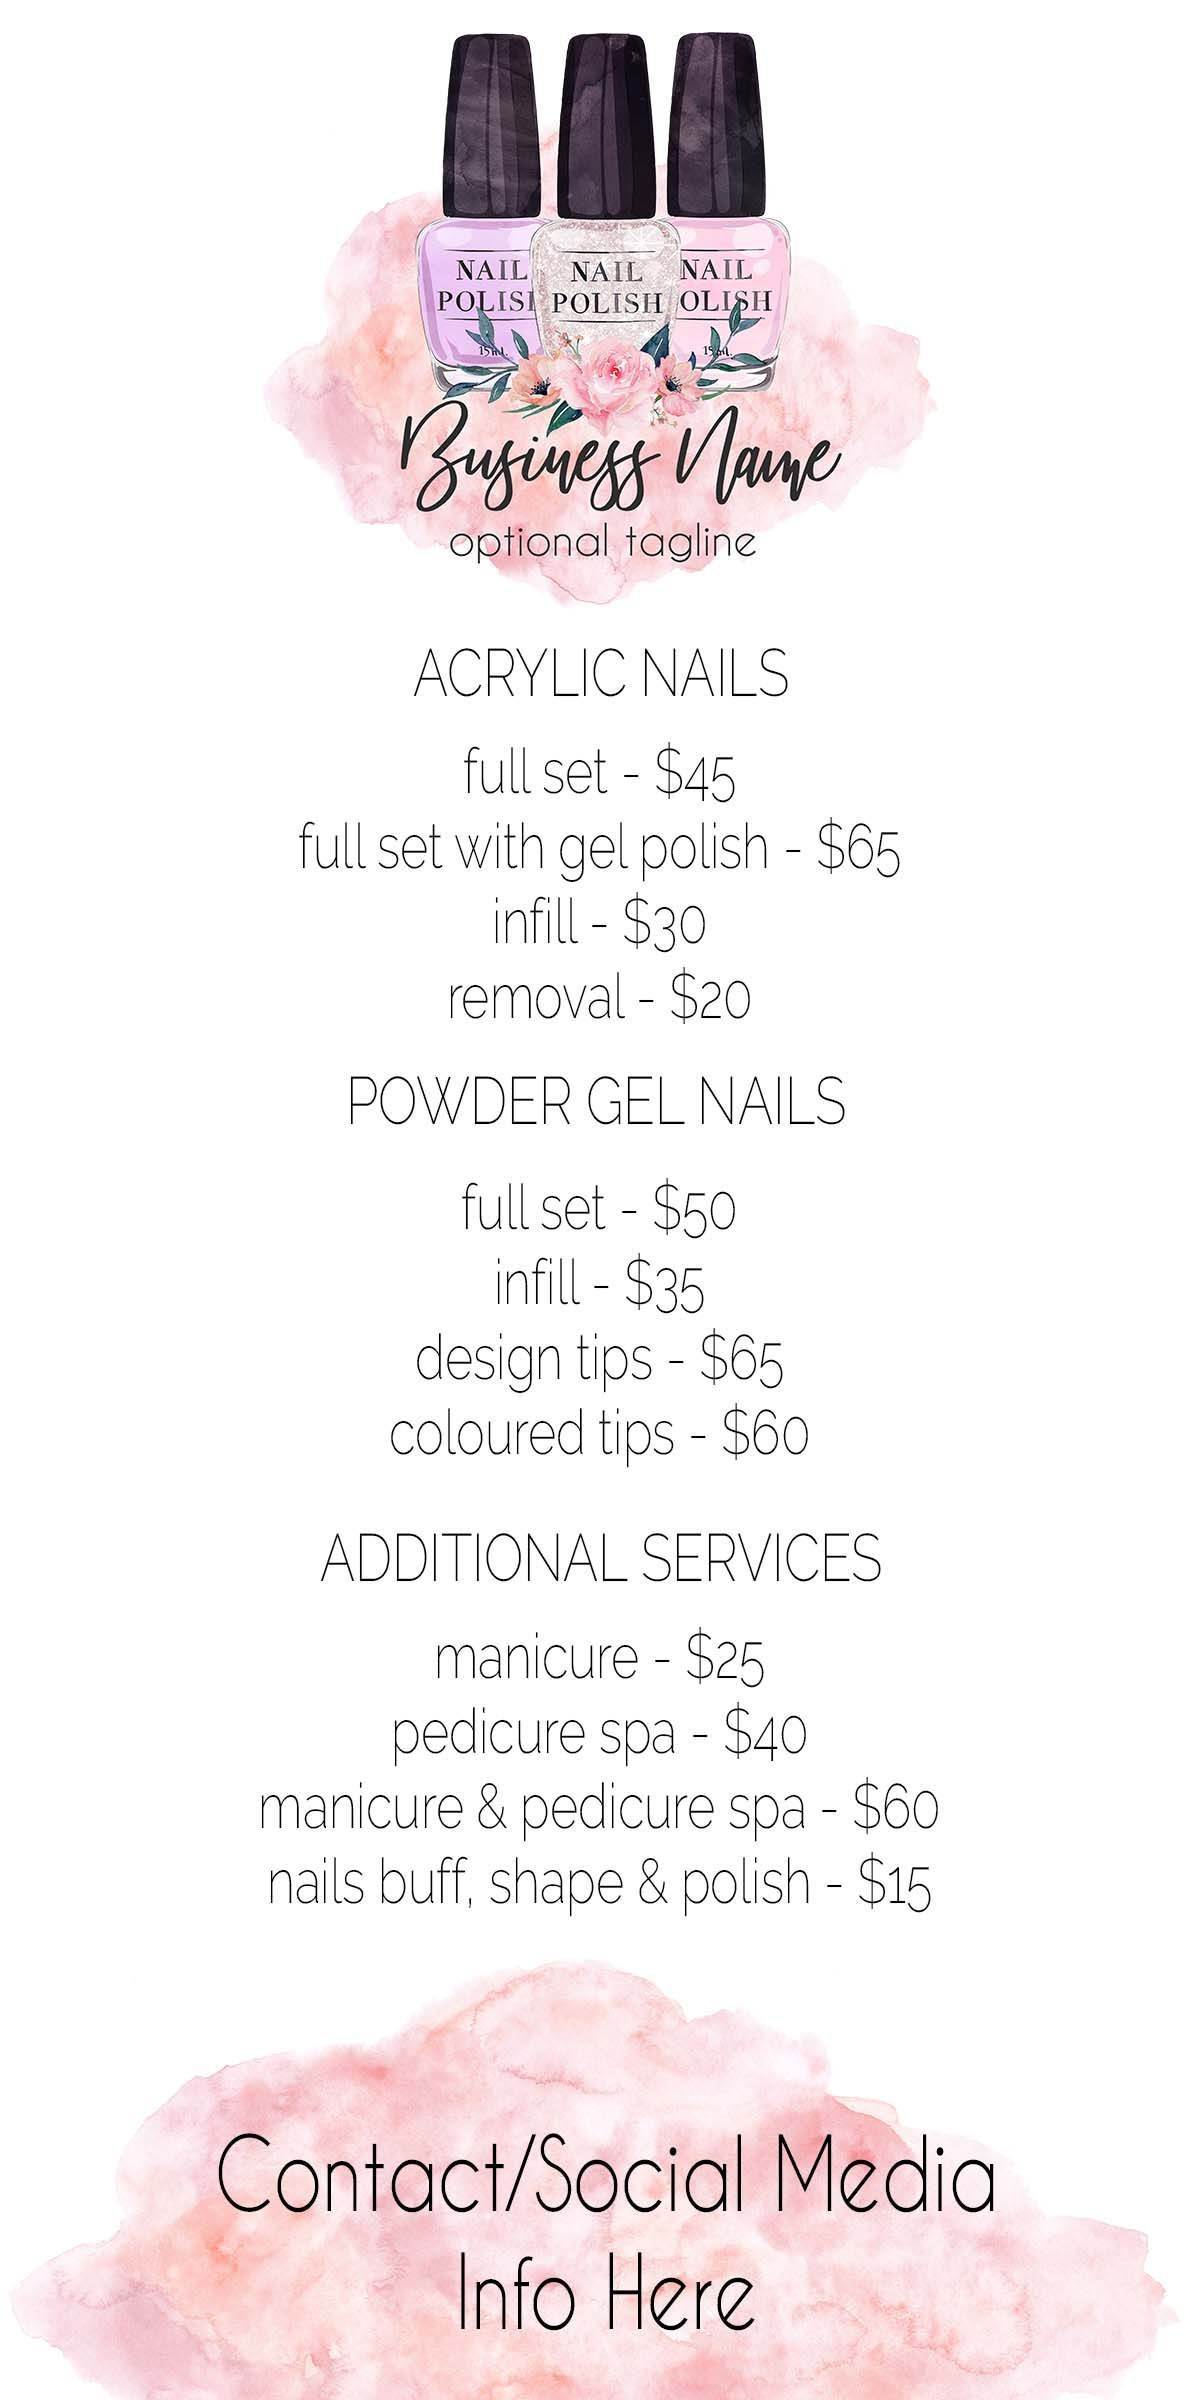 Modern Nails Prices : modern, nails, prices, Salon, Pricelist,, Beauty, Nails, Priceslit, Youself!, Prices,, Names,, Price